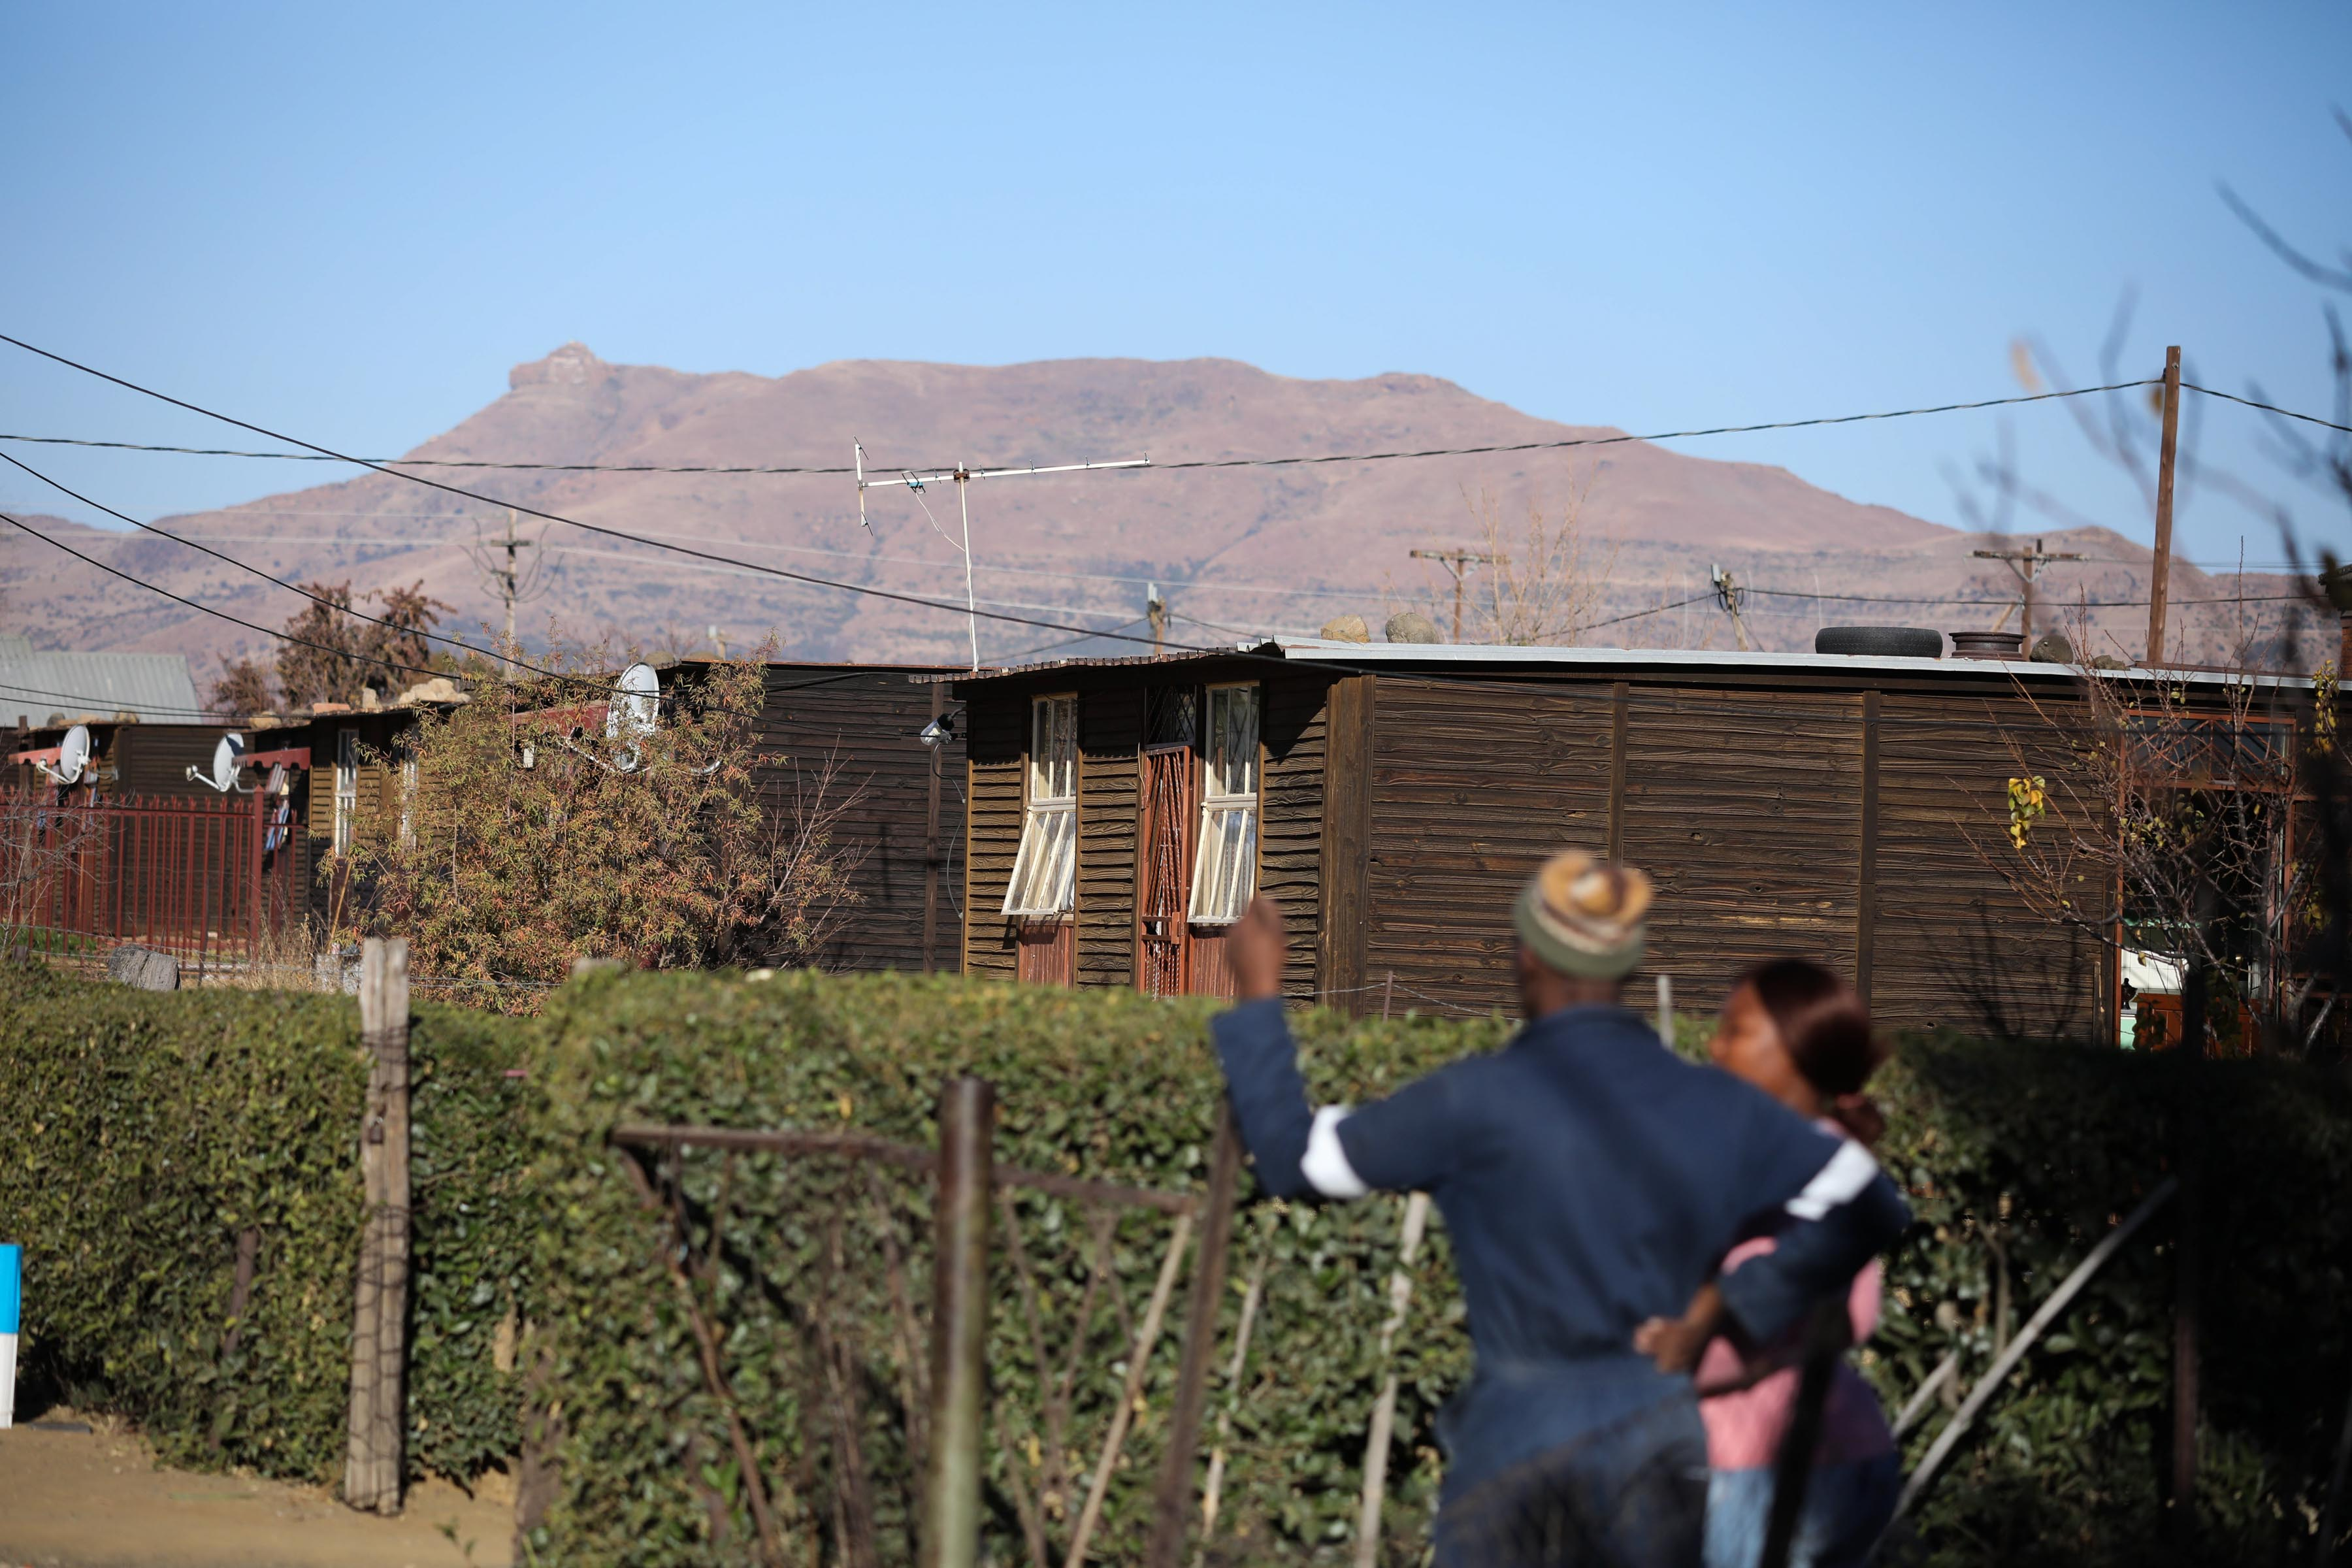 11 July 2019: Disputes as to who owns the title deeds to houses built during apartheid has meant delays in beneficiaries being able to take ownership.